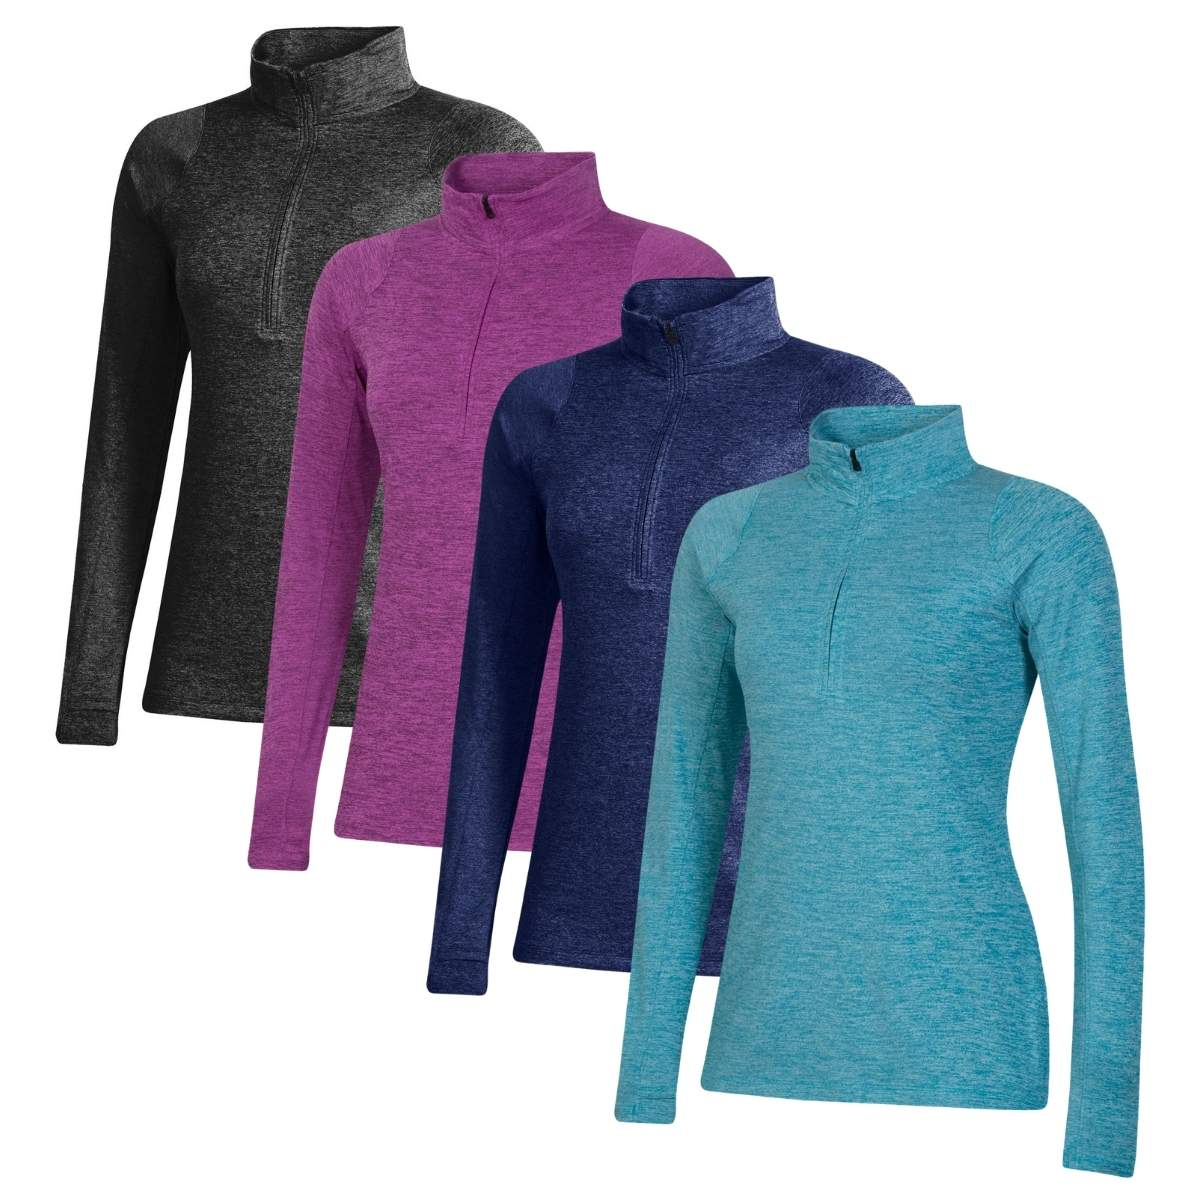 Under Armour Women's 2021 Zinger Heather 1/2 Zip Pullover